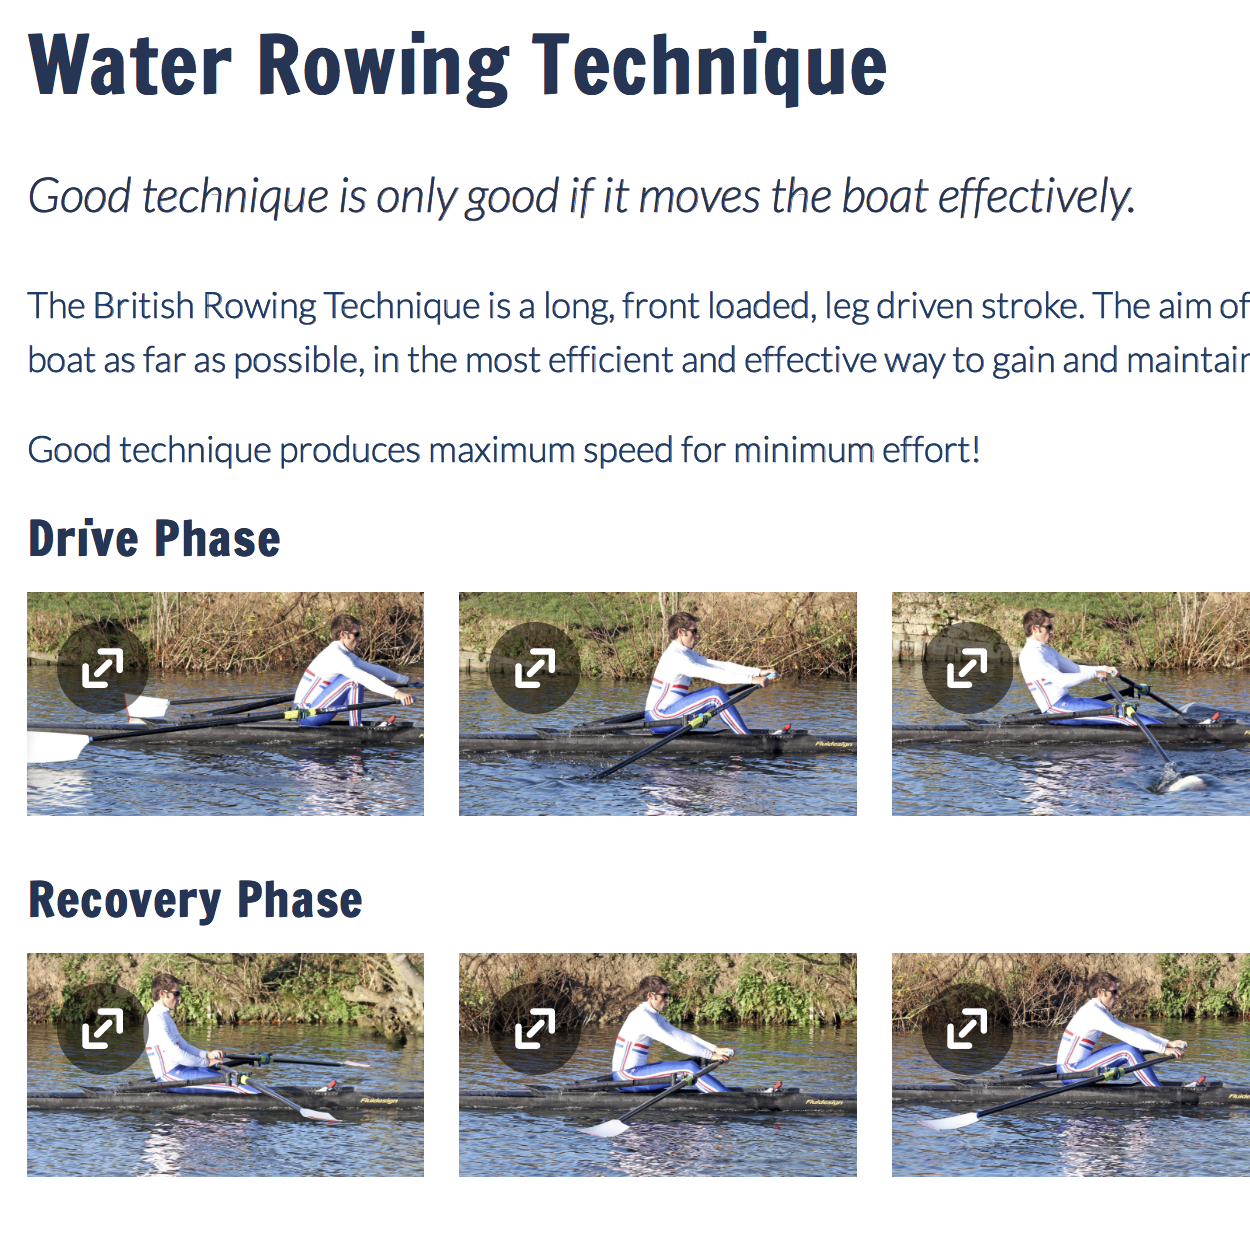 BRITISH ROWING TECHNIQUES